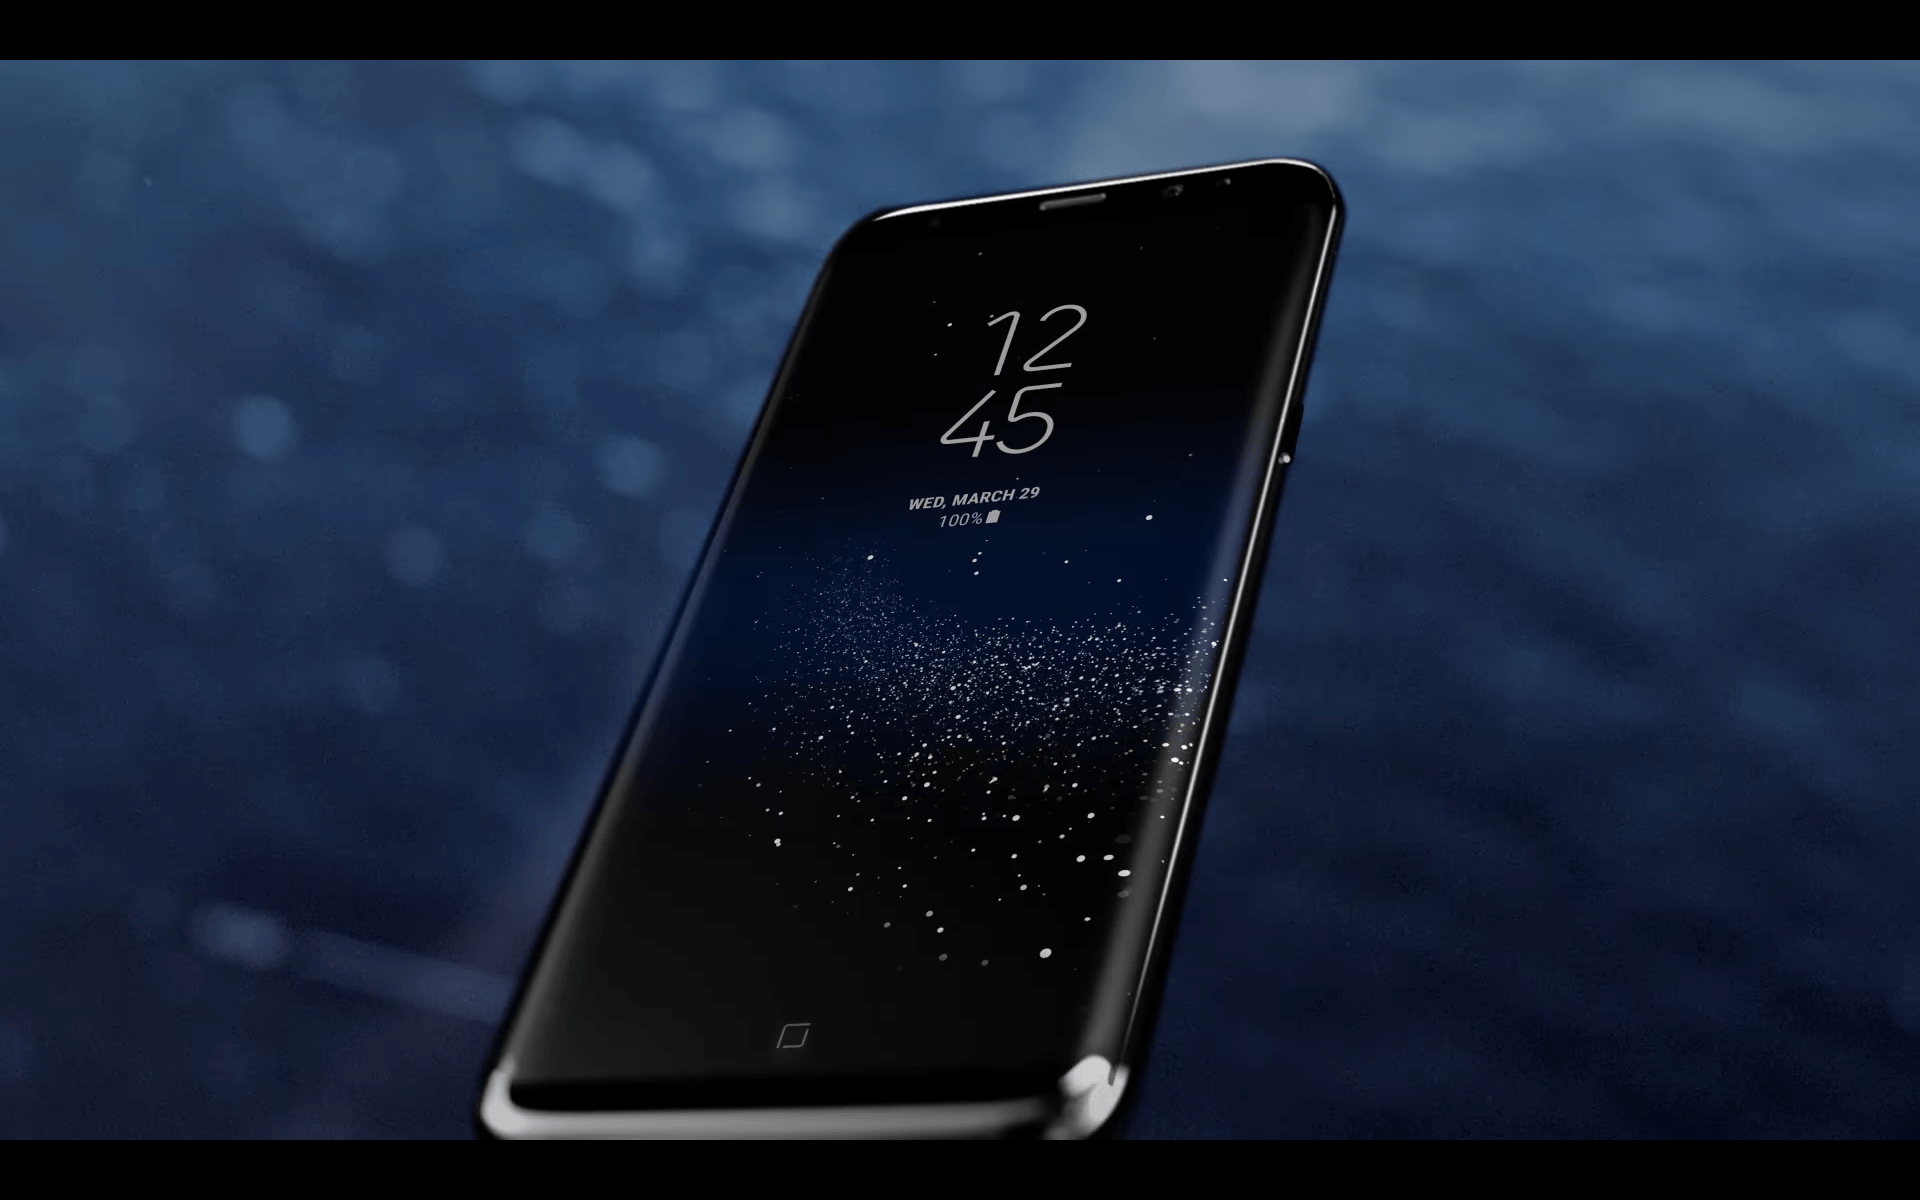 samsung galaxy s8 plus certains prototypes avaient un double capteur photo frandroid. Black Bedroom Furniture Sets. Home Design Ideas